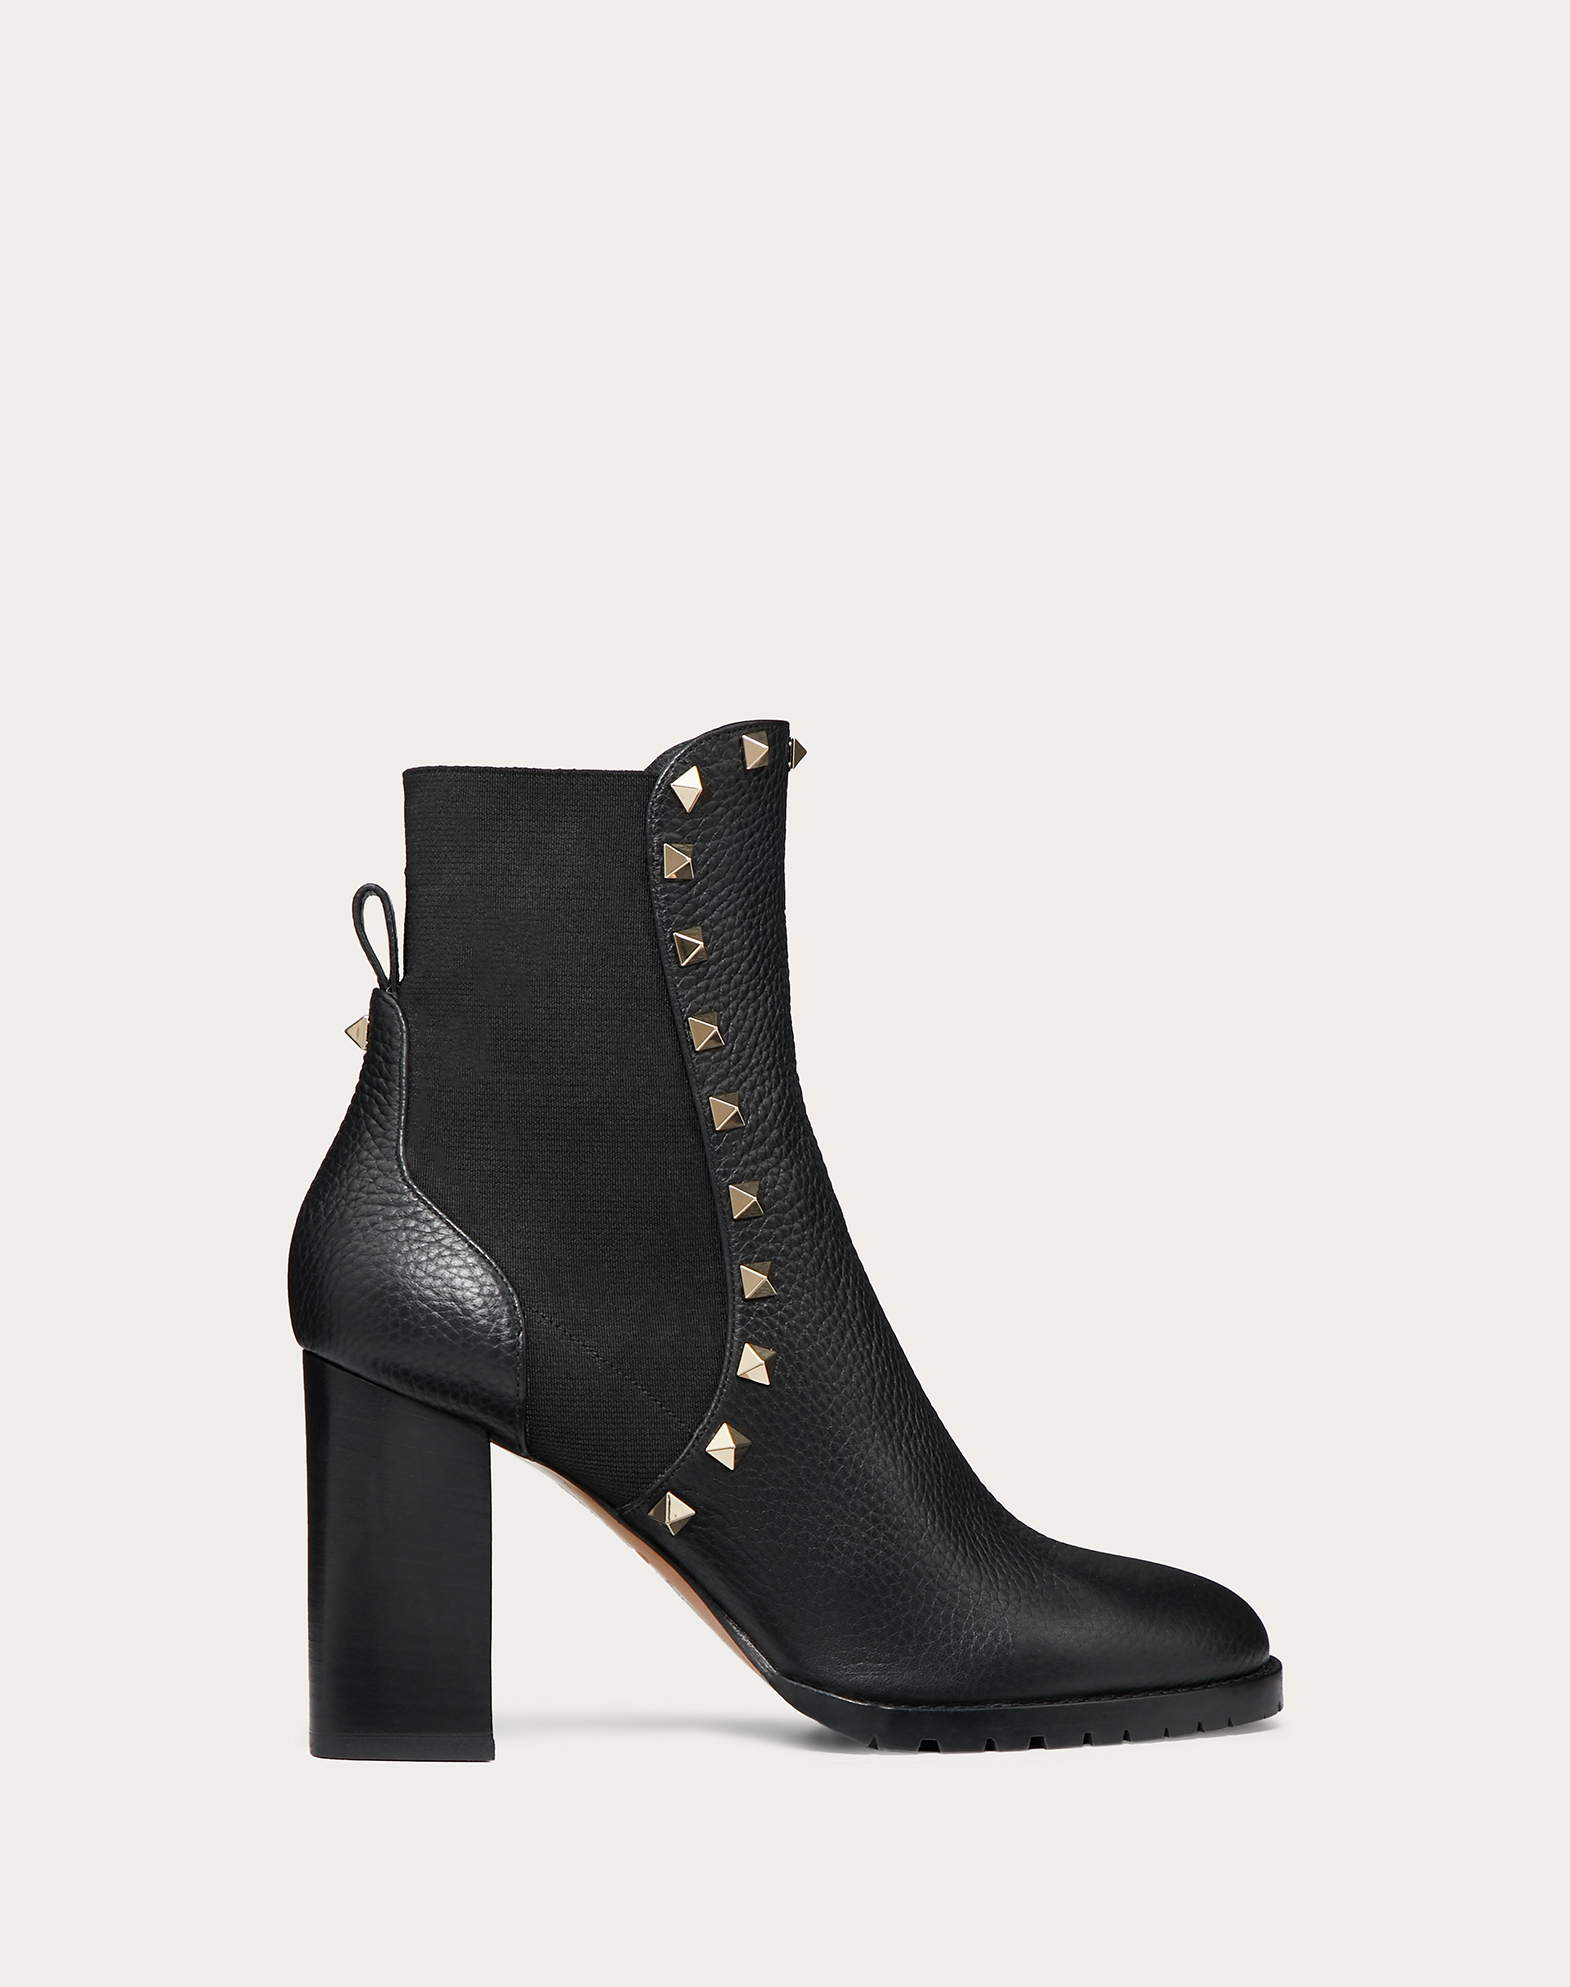 Rockstud Grainy Calfskin Ankle Boot 80 mm